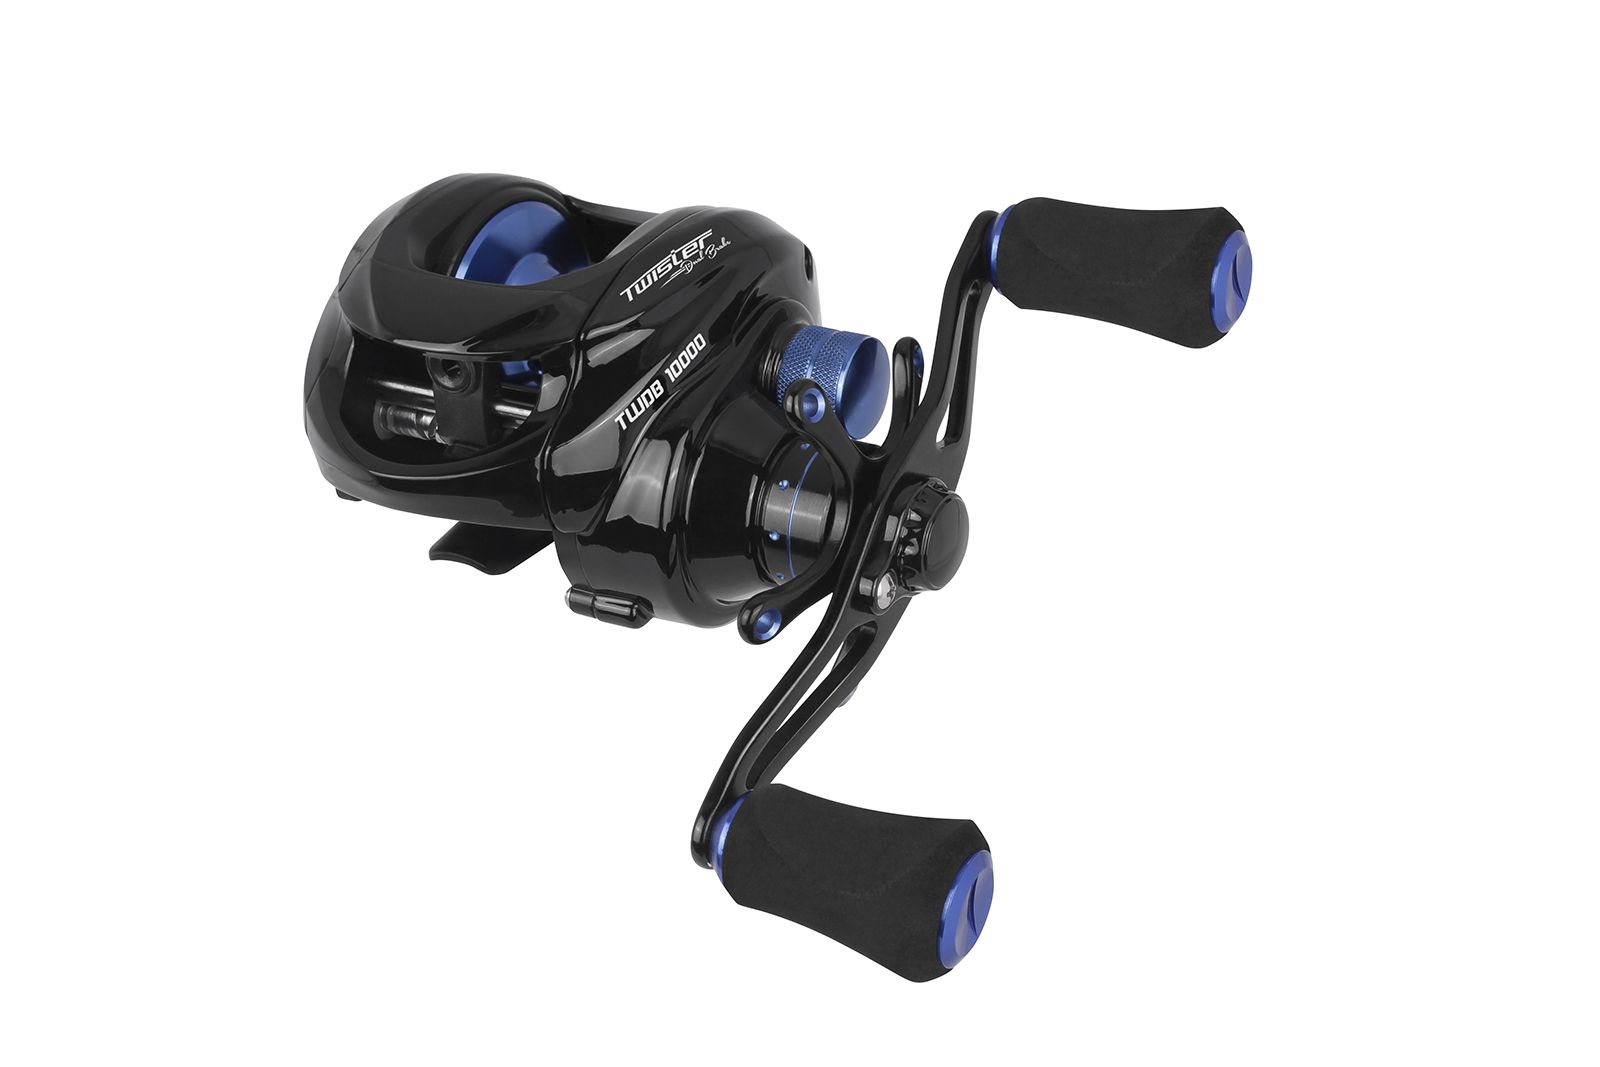 Carretilha Saint Plus Twister Dual Brake 10000LH Esquerda - 10 Rolamentos